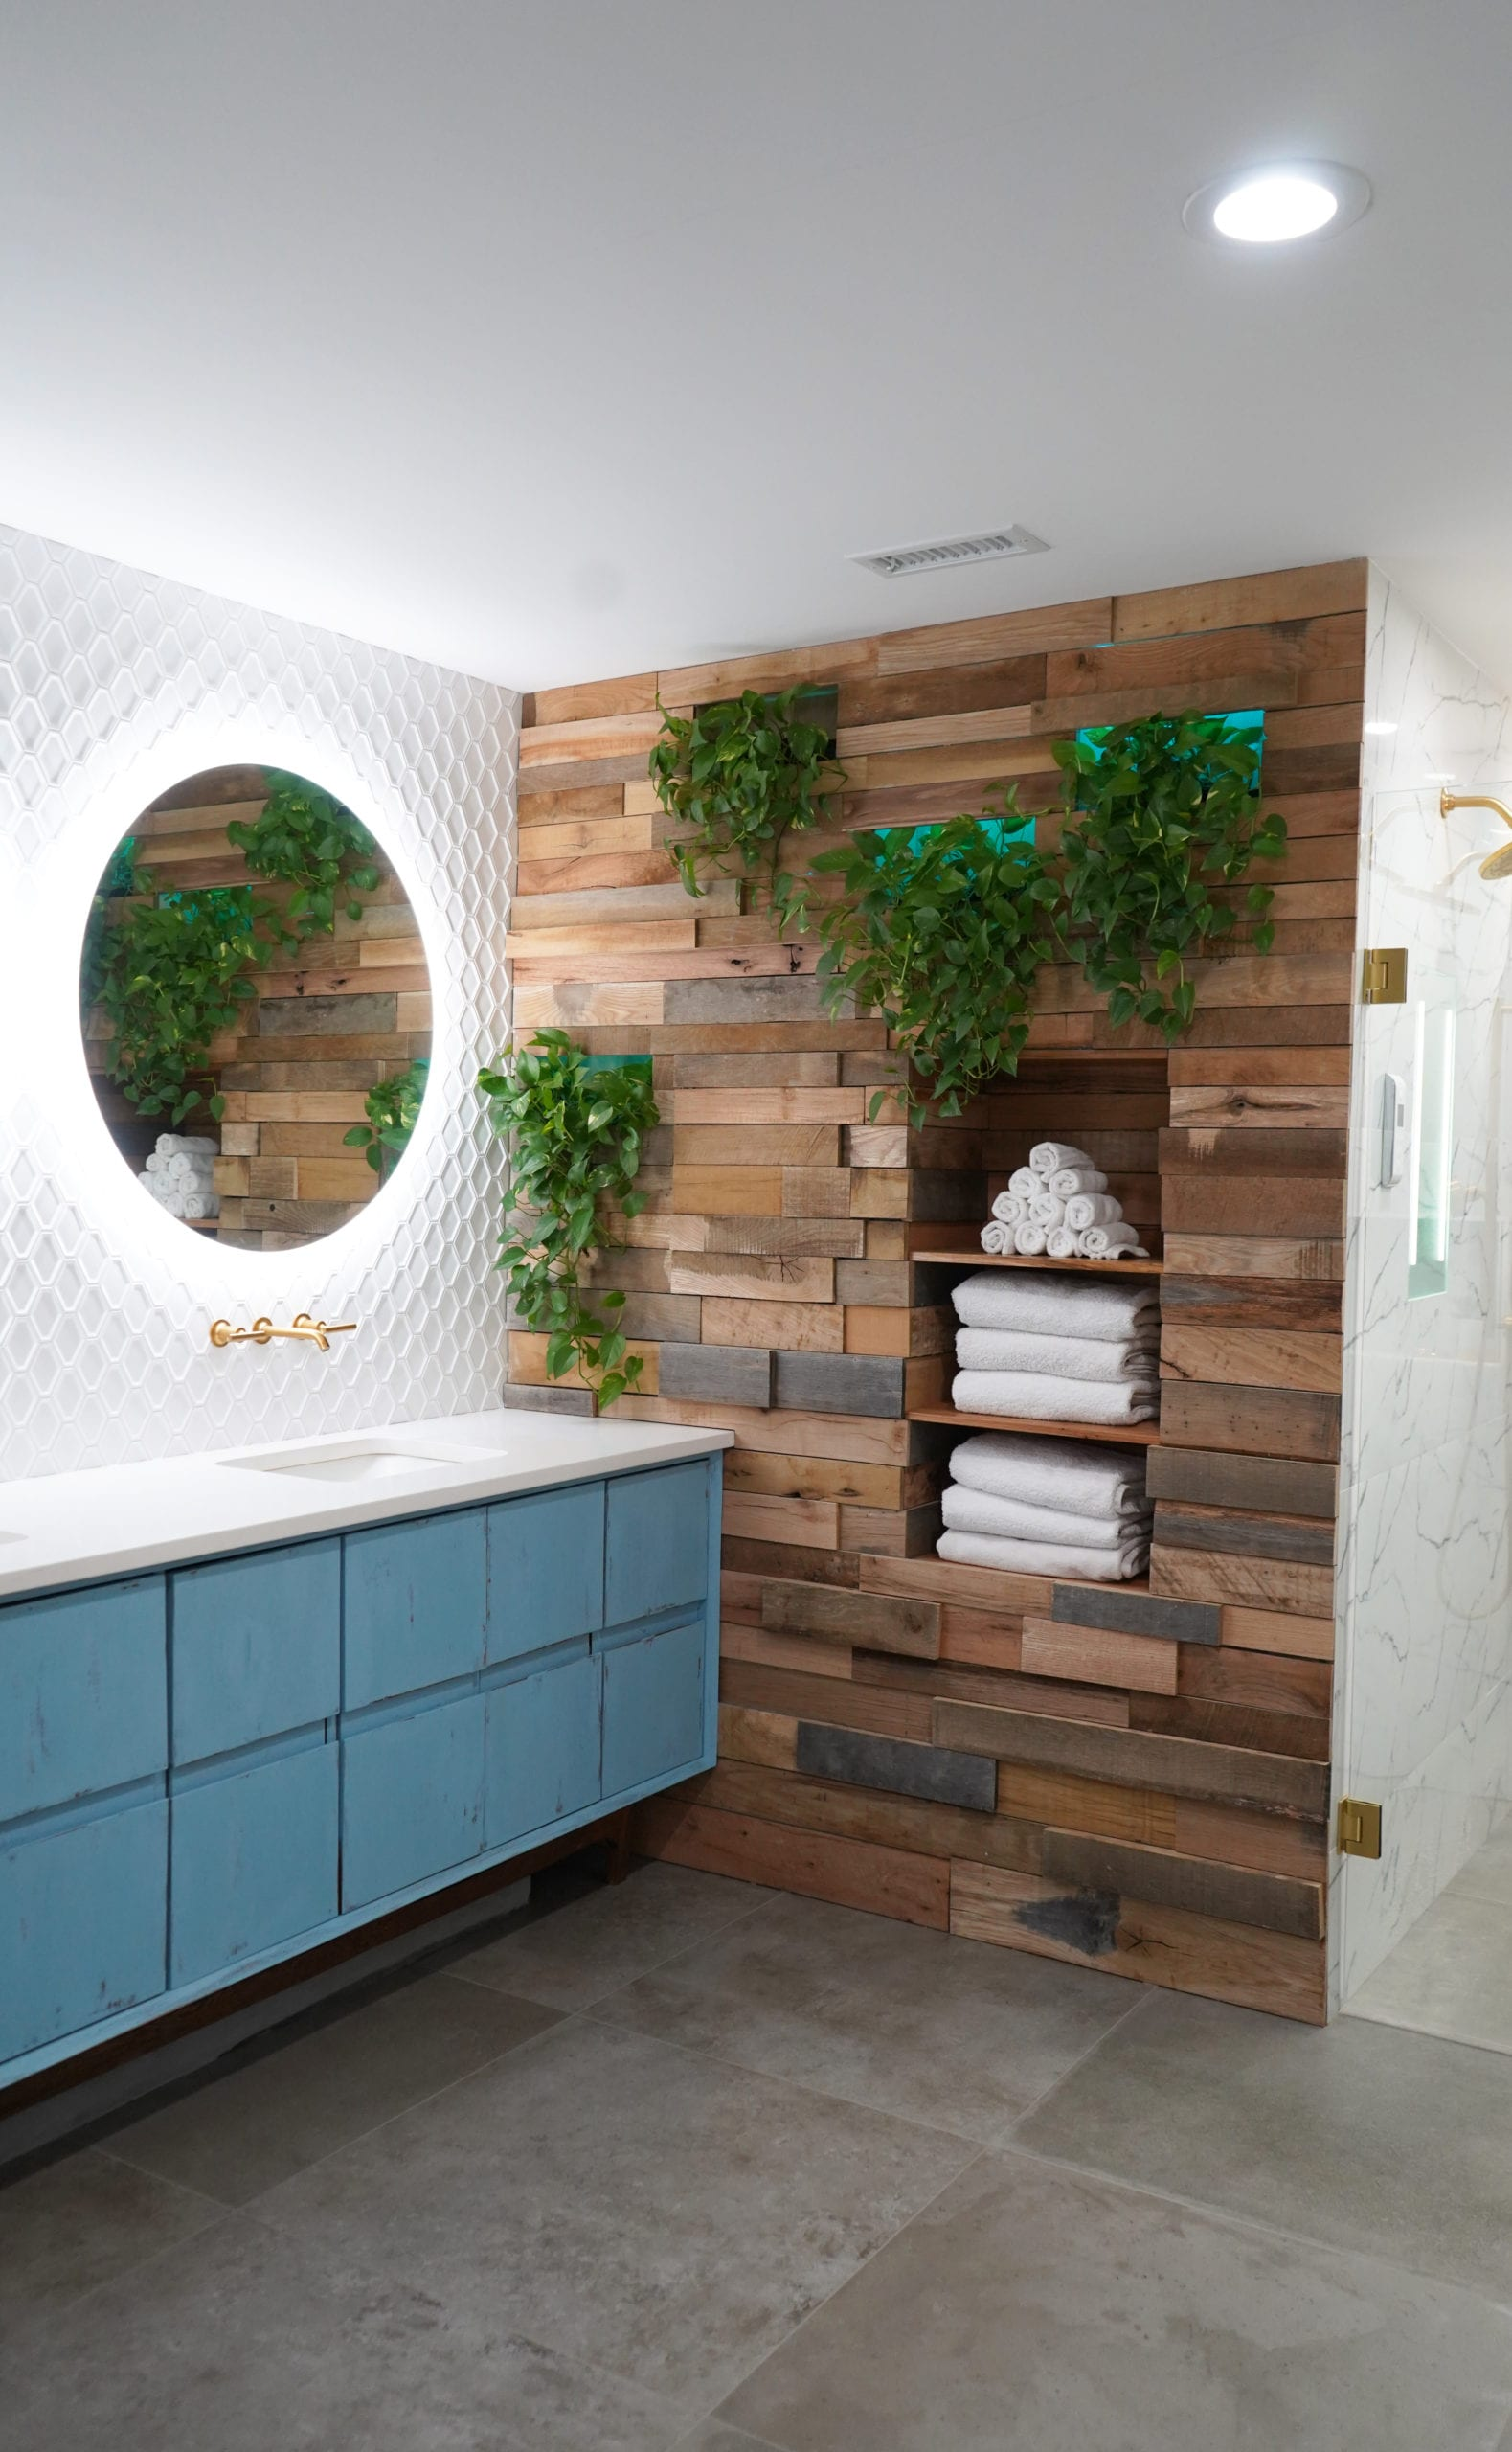 Bathroom Design and Remodel in Atlanta with contemporary vanity, marble tile, walk in shower, gold shower, gold faucets, wood wall, white tile, round mirrors.